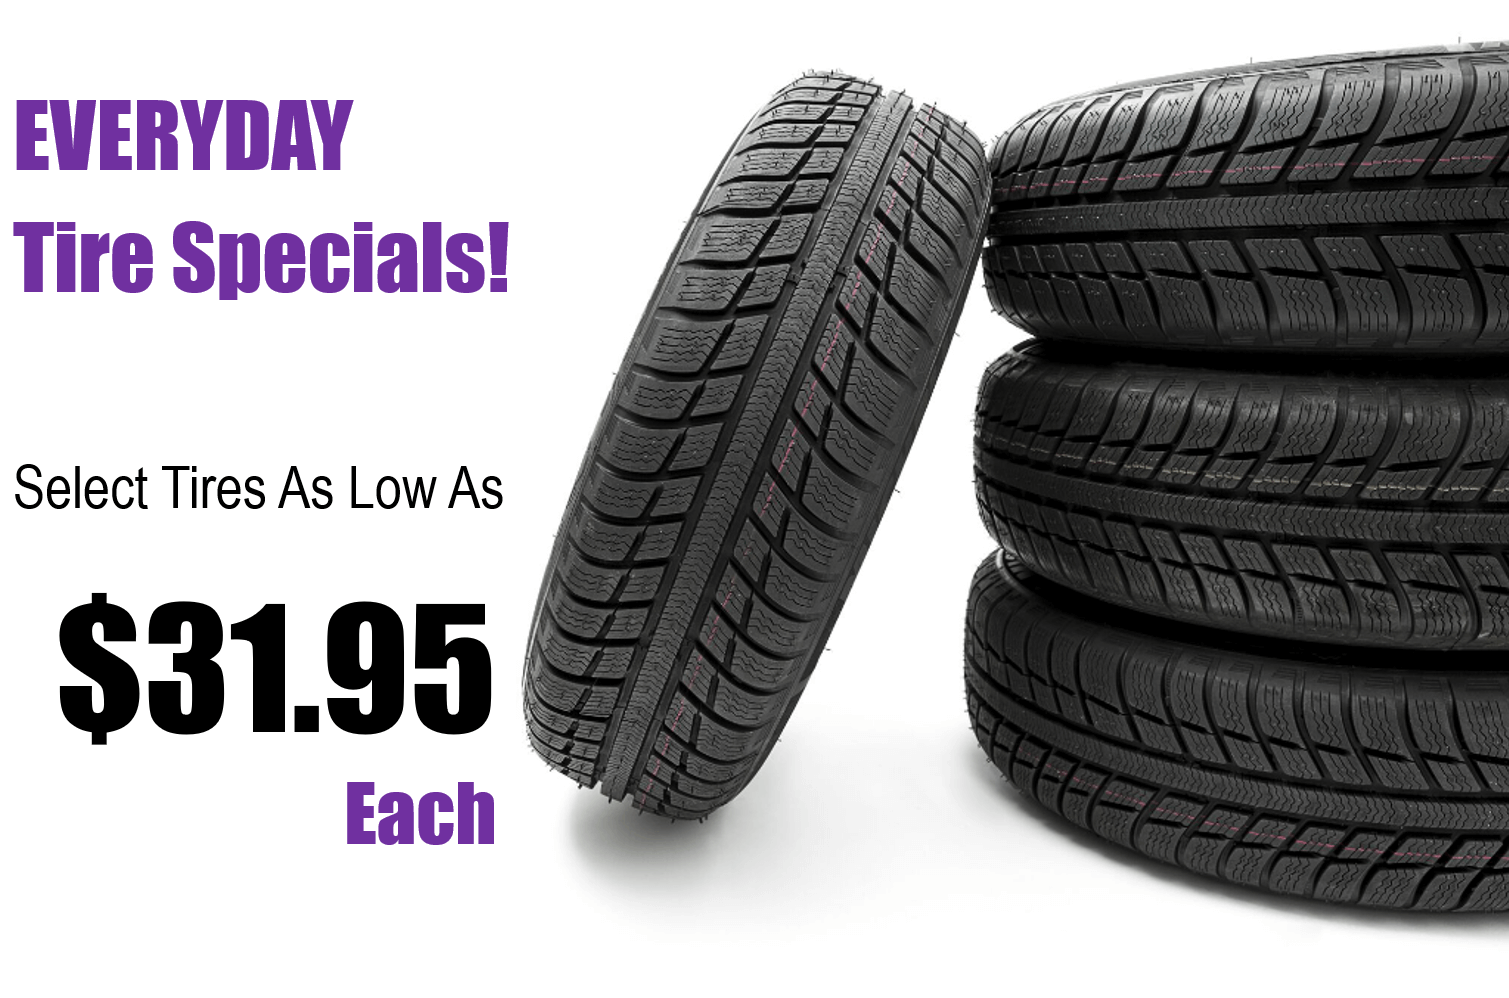 Tire Specials from $31.95 each